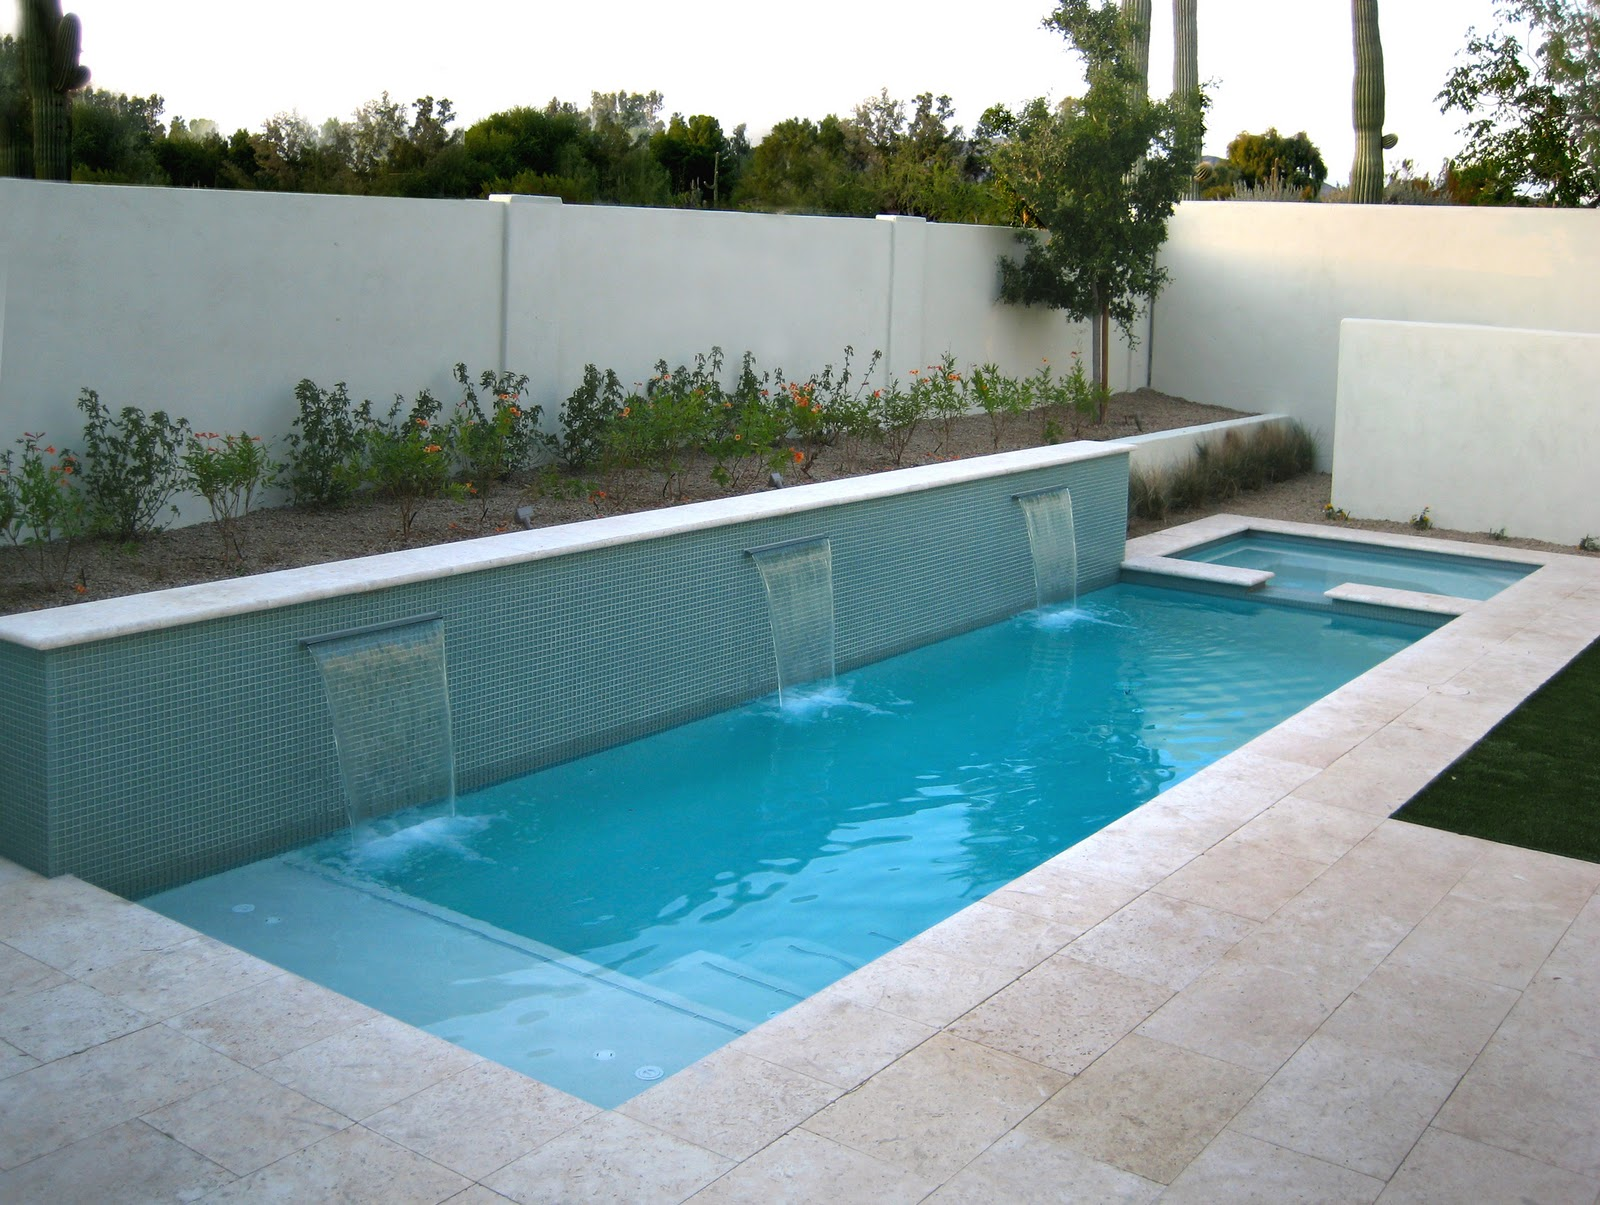 25 fabulous small backyard designs with swimming pool for Swimming pool ideas for backyard